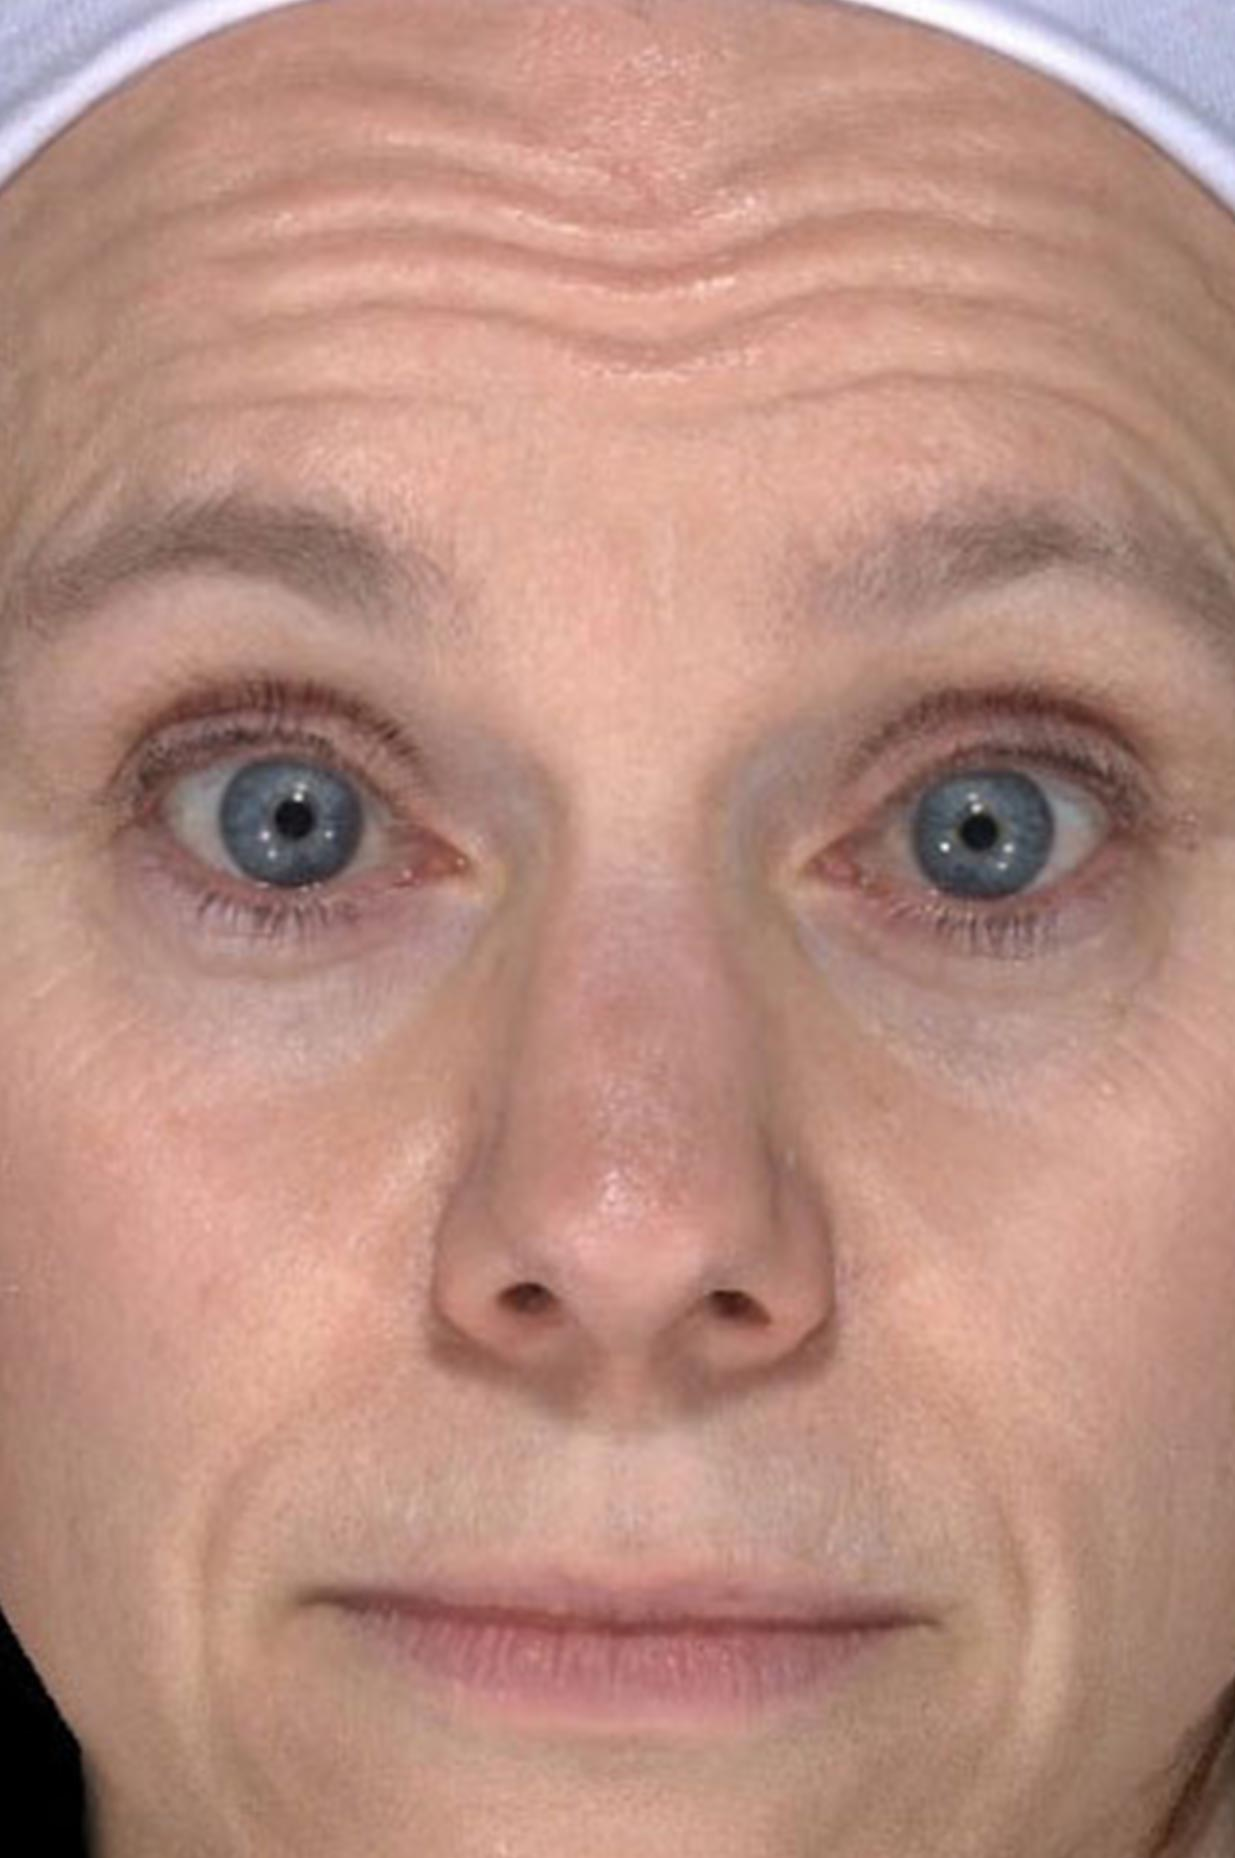 Before Botox Injection Treatment